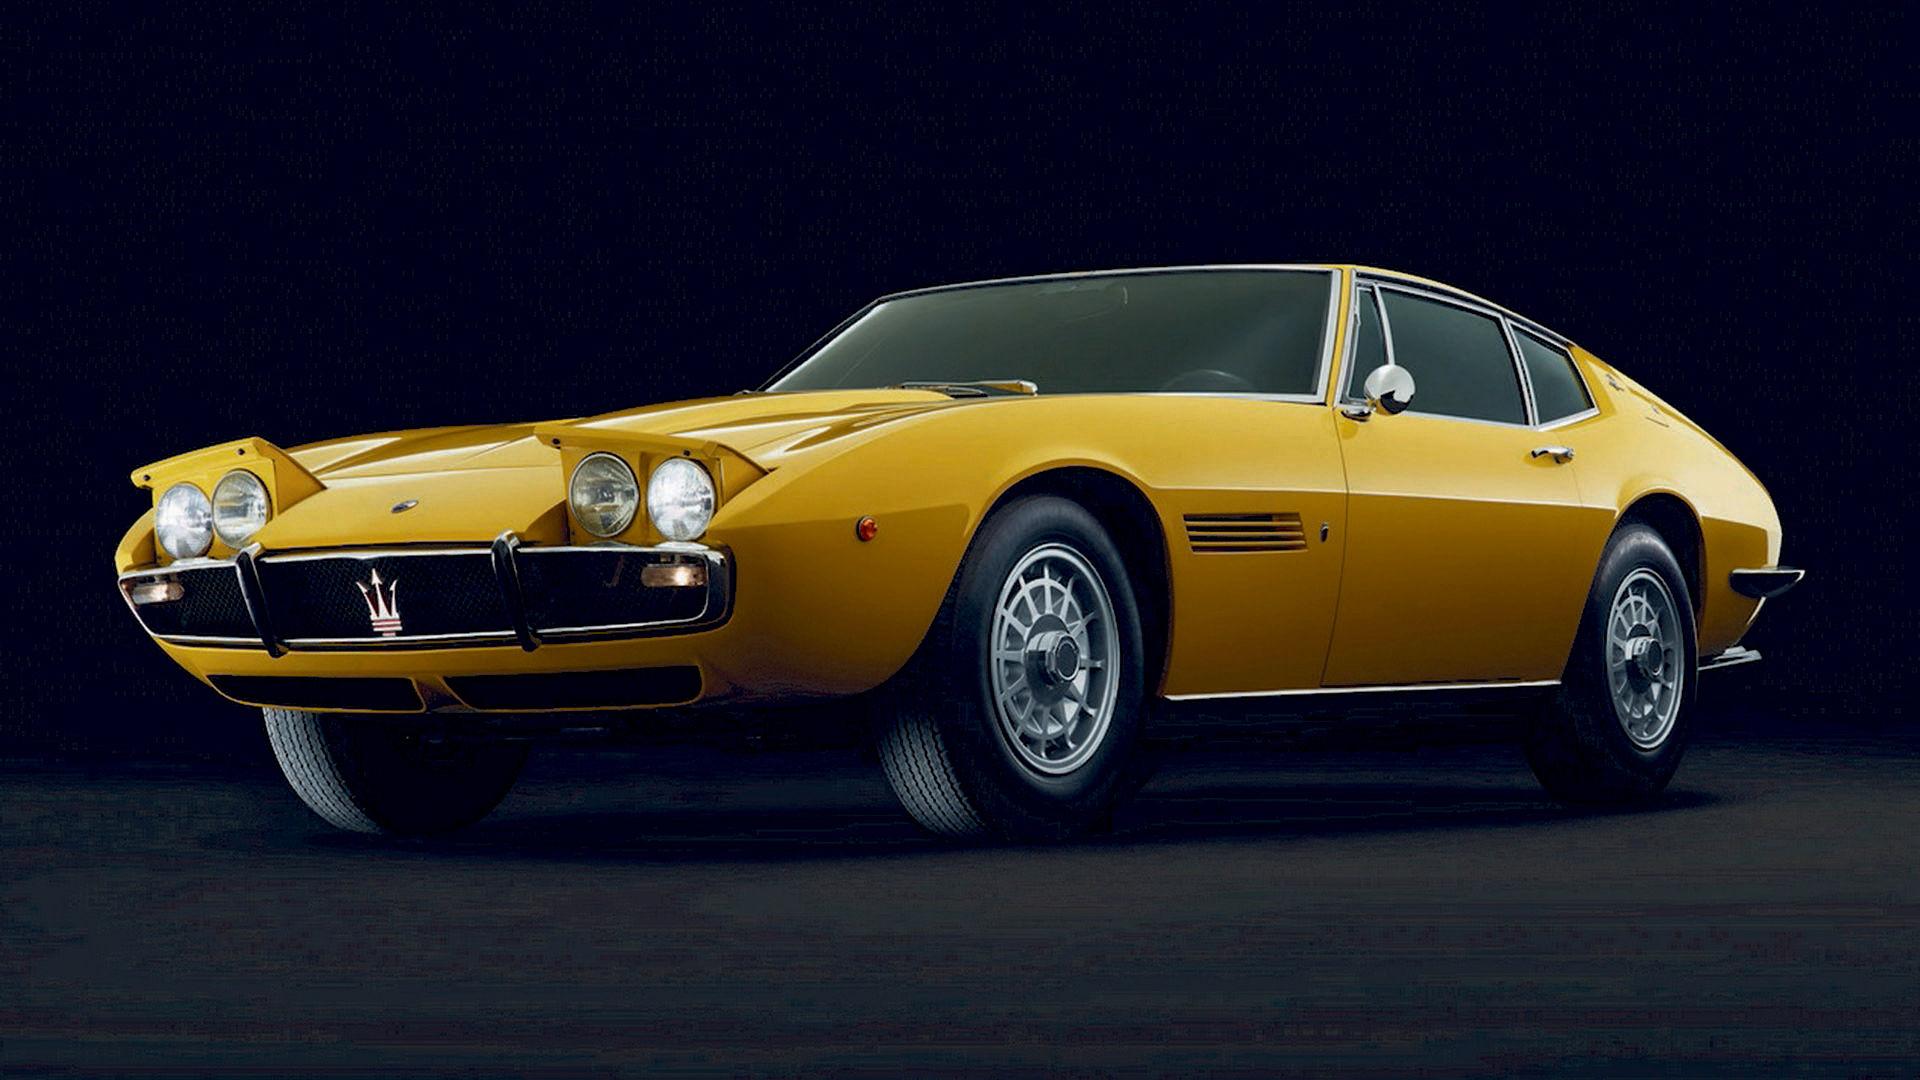 Maserati Ghibli: the classic car presented in 1966 at the Turin Auto Show